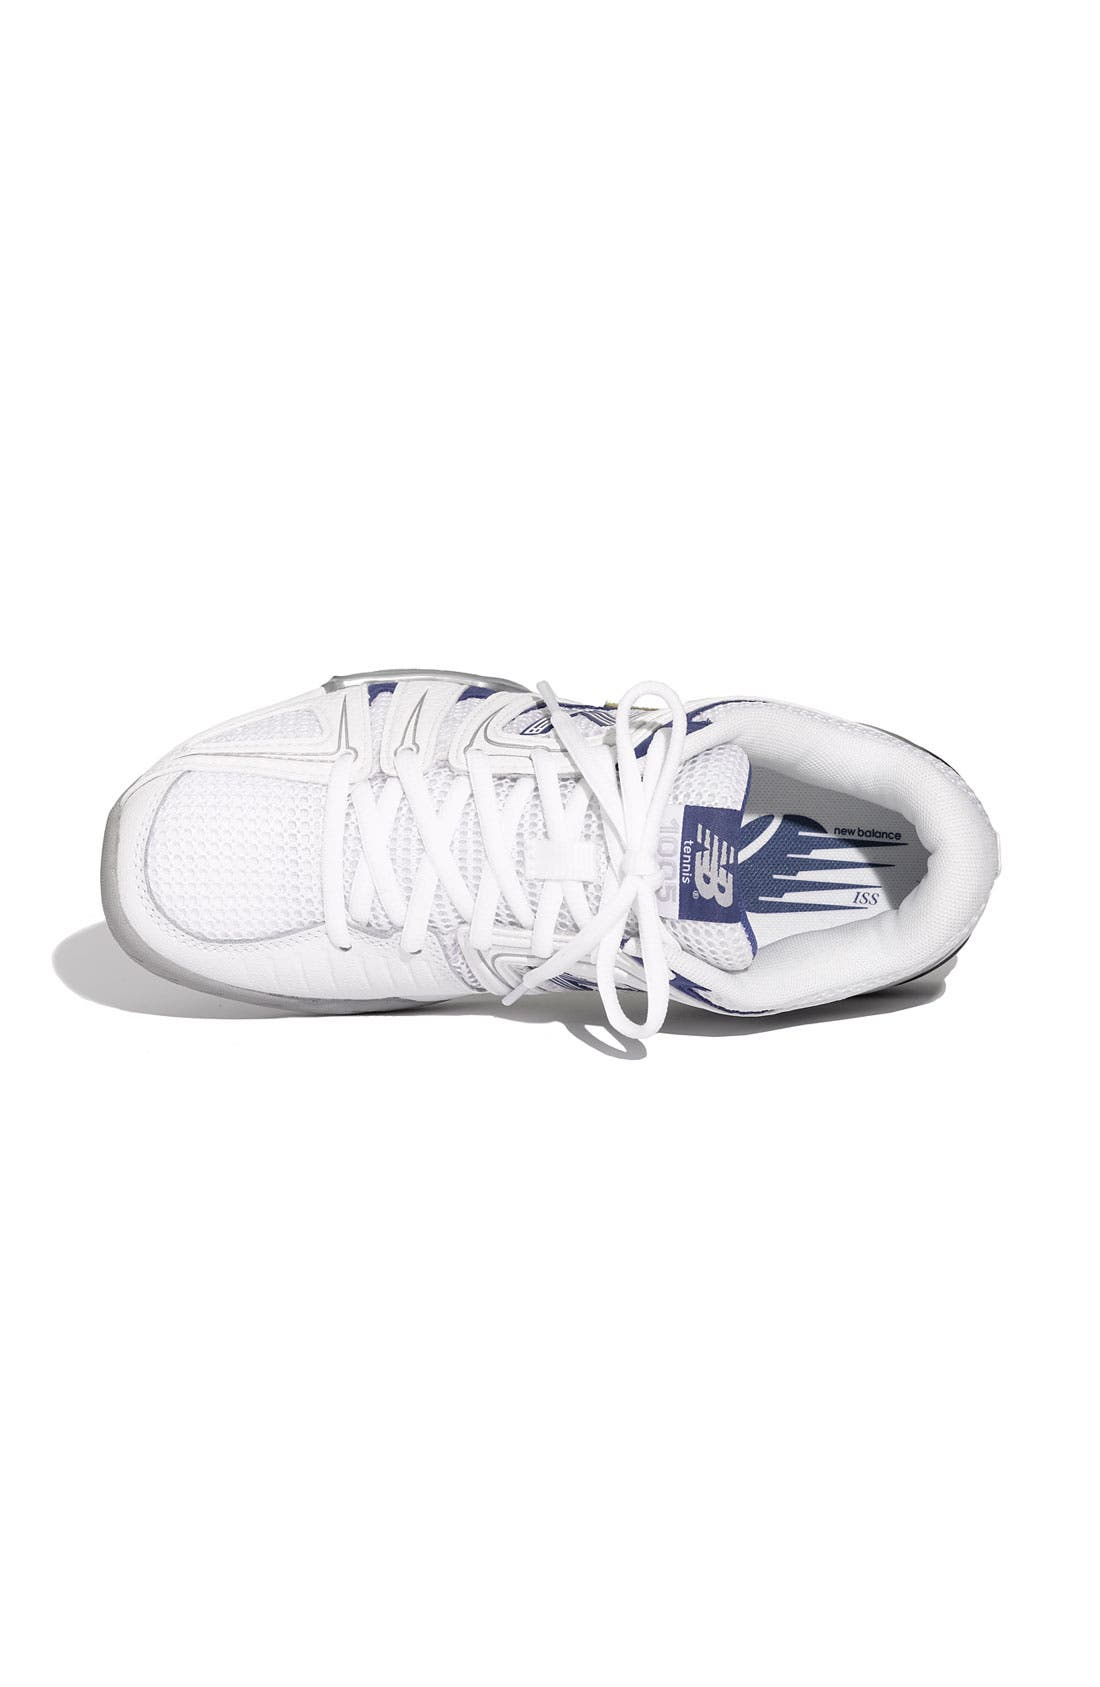 Alternate Image 3  - New Balance '1005' Tennis Shoe (Women)(Retail Price: $114.95)